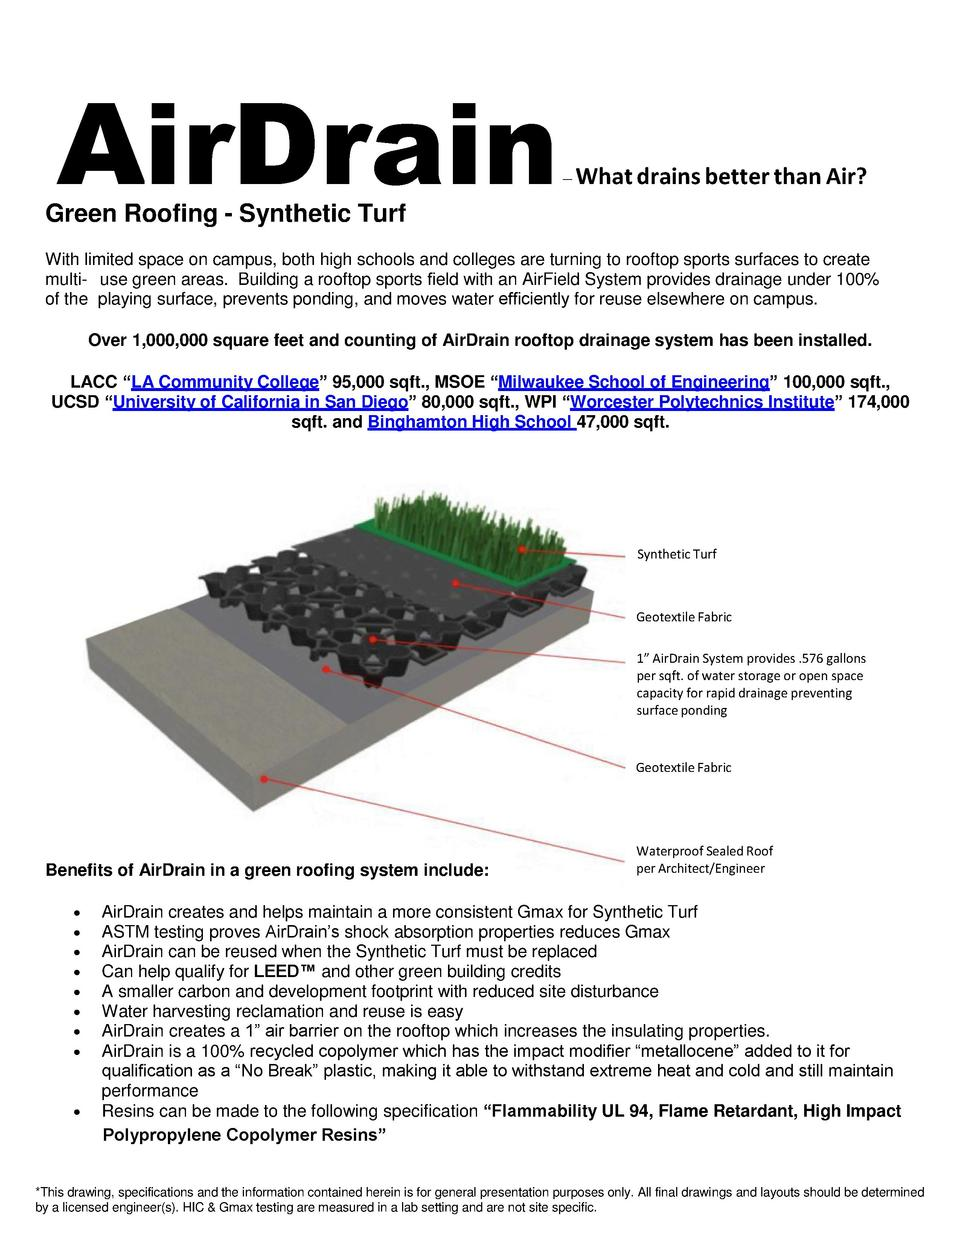 AirDrain      What drains better than Air   Green Roofing - Synthetic Turf  With limited space on campus, both high school...